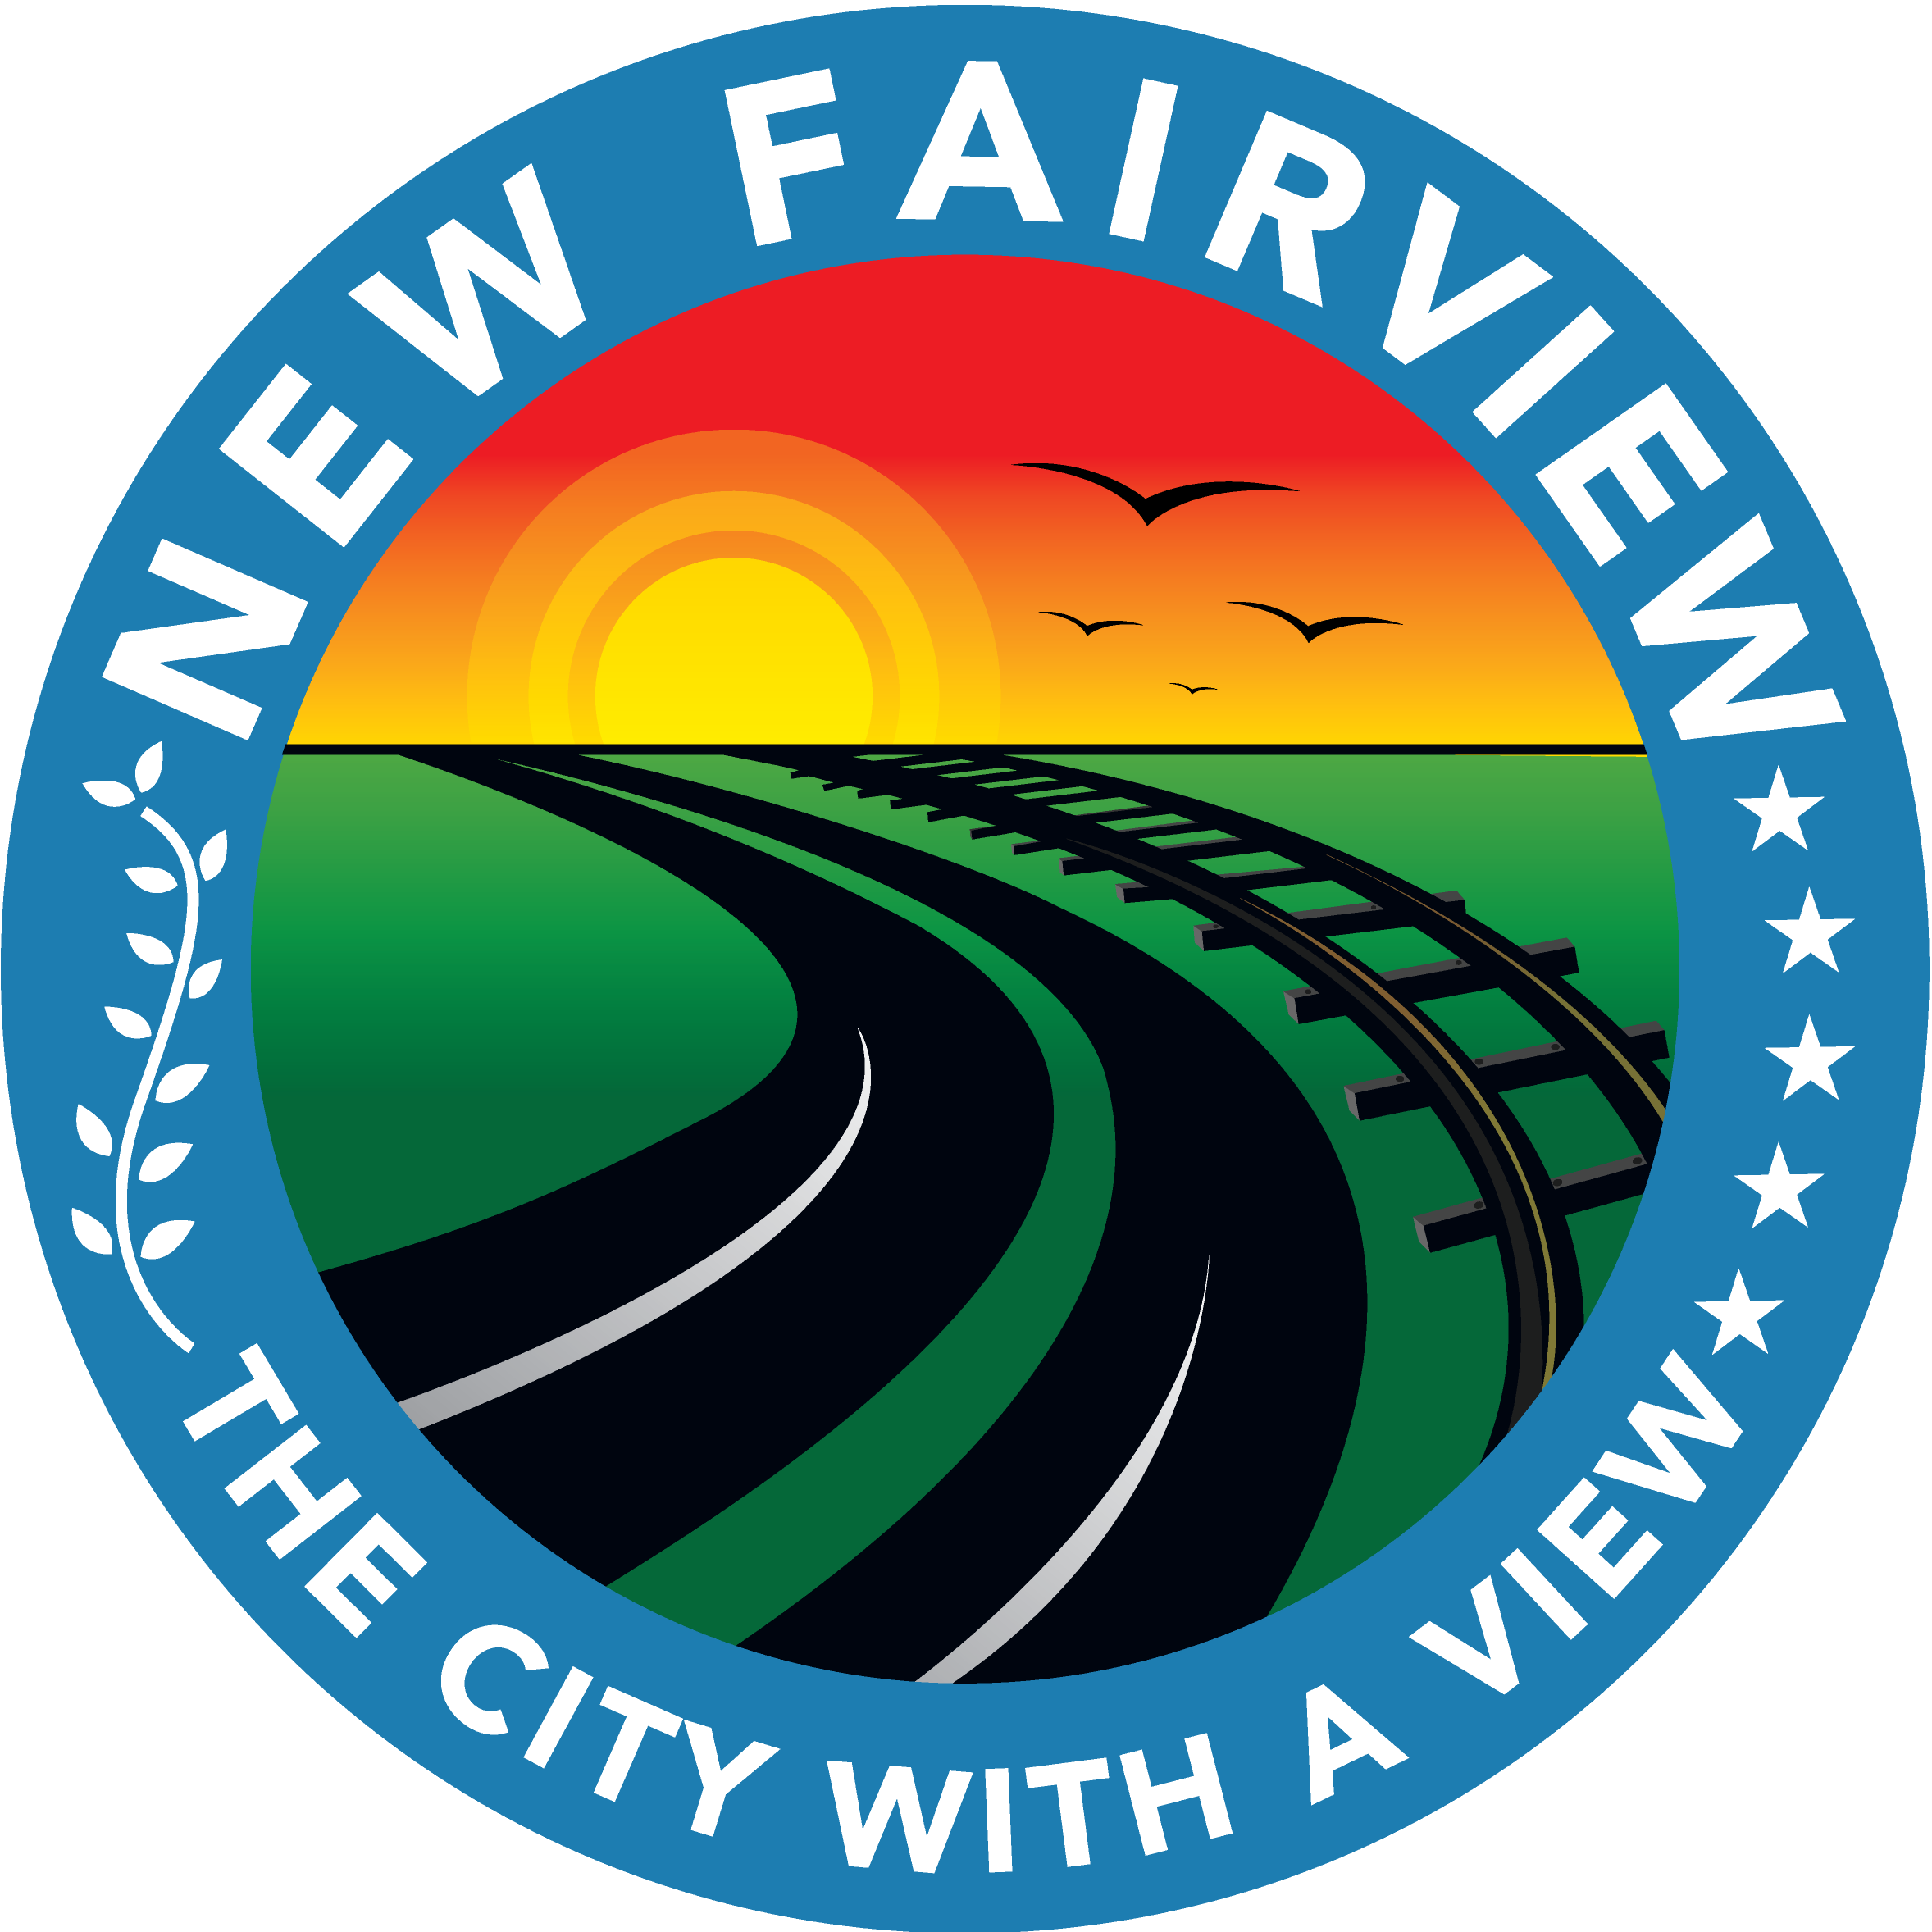 New Fairview Logo